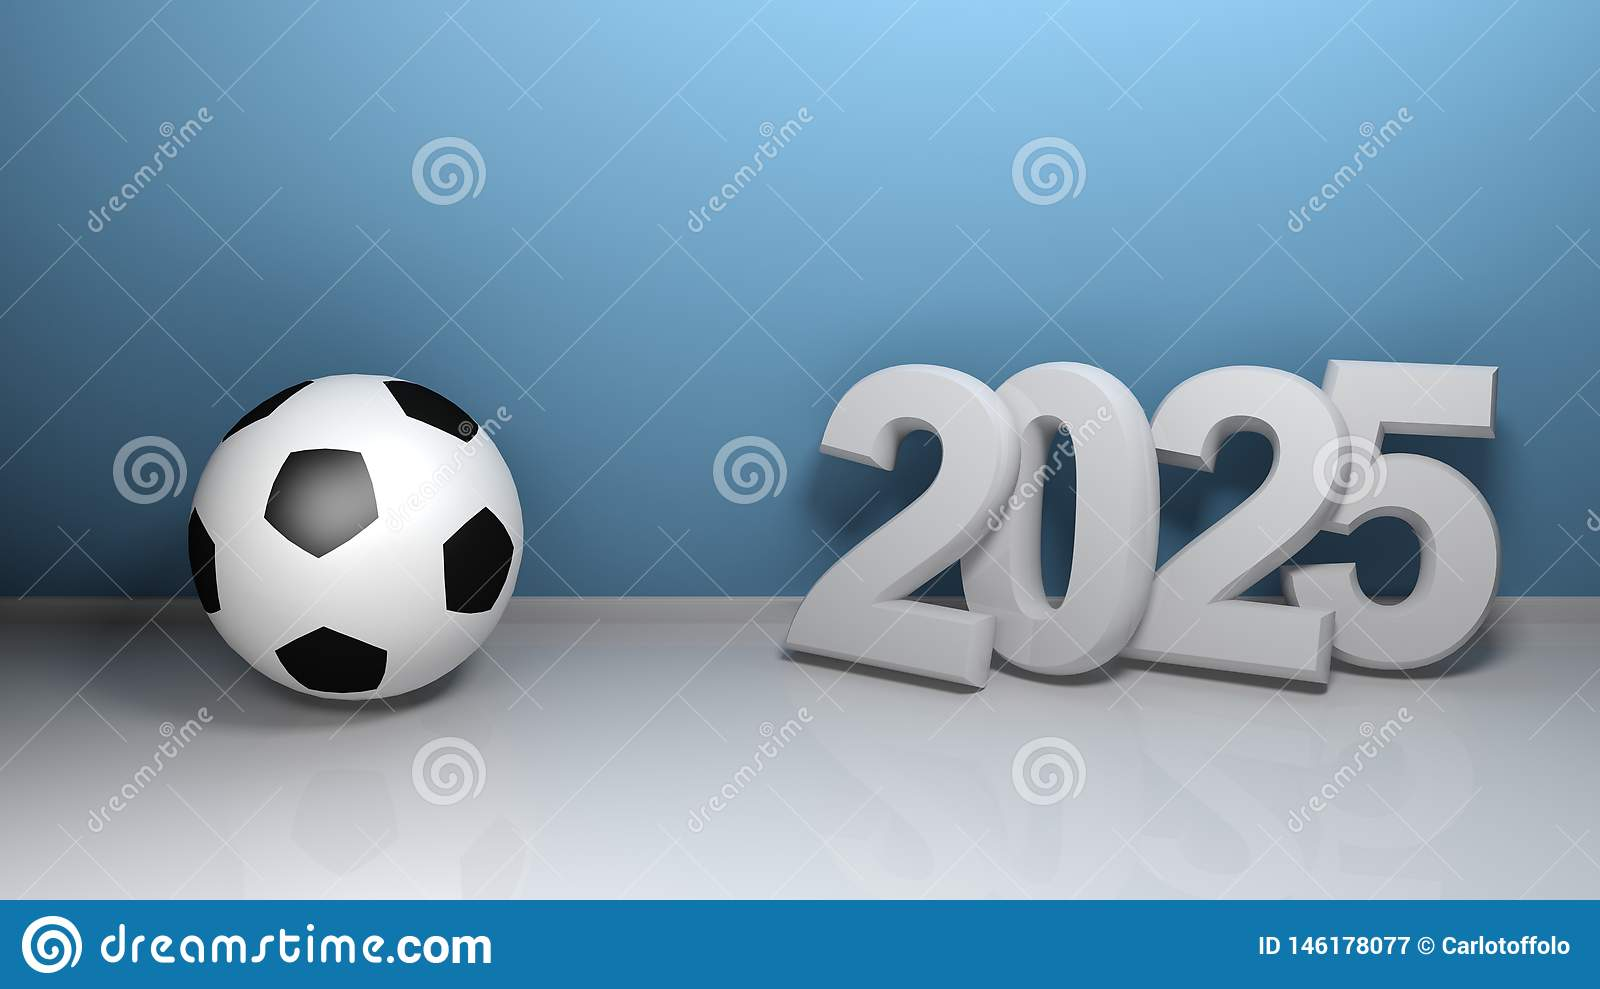 2025 at blue wall with soccer ball - 3D rendering illustration